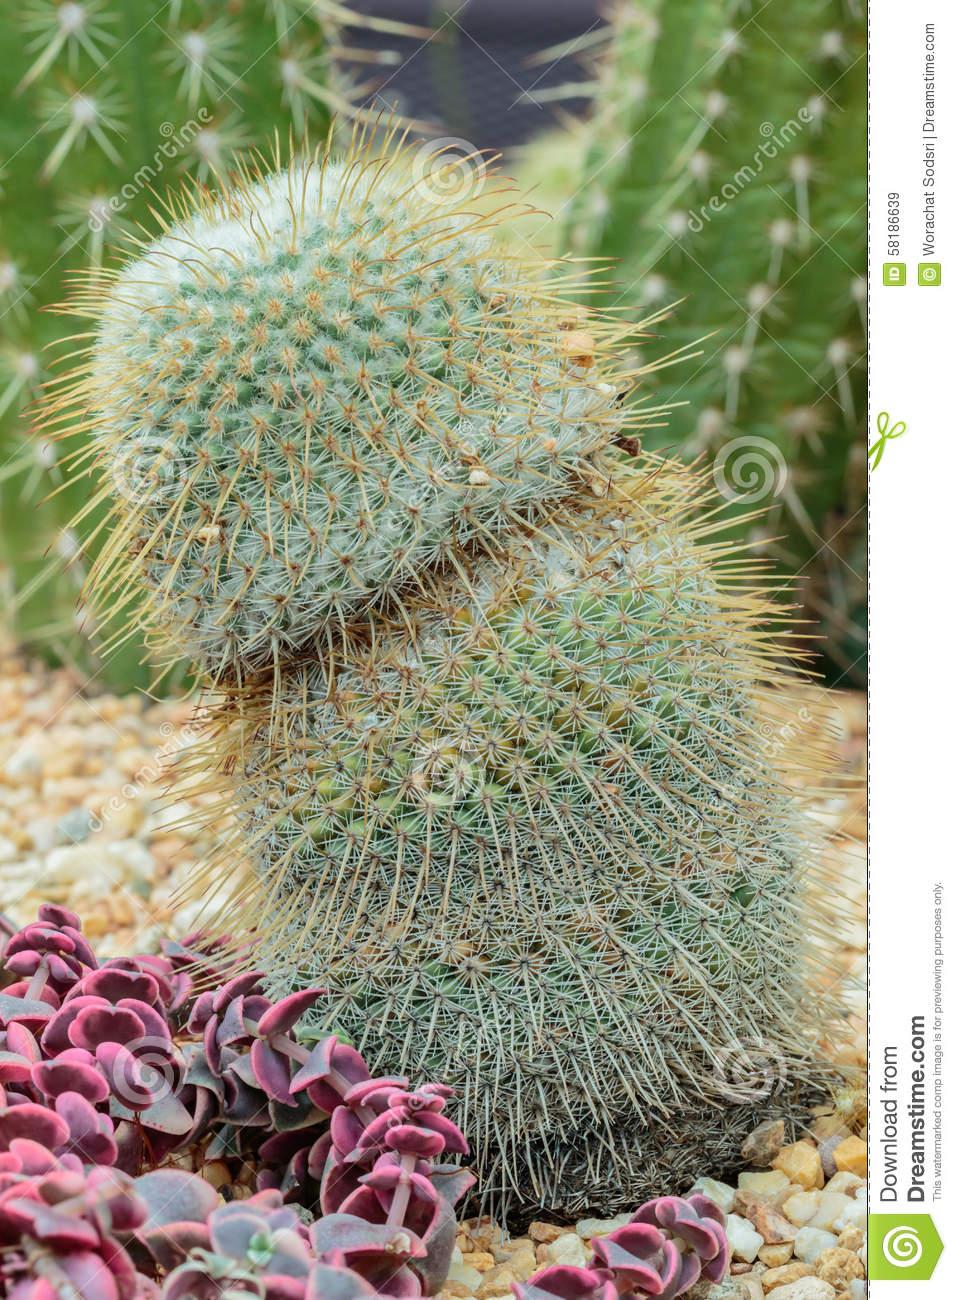 Download Cactus stock image. Image of green, growth, large, copy - 58186639